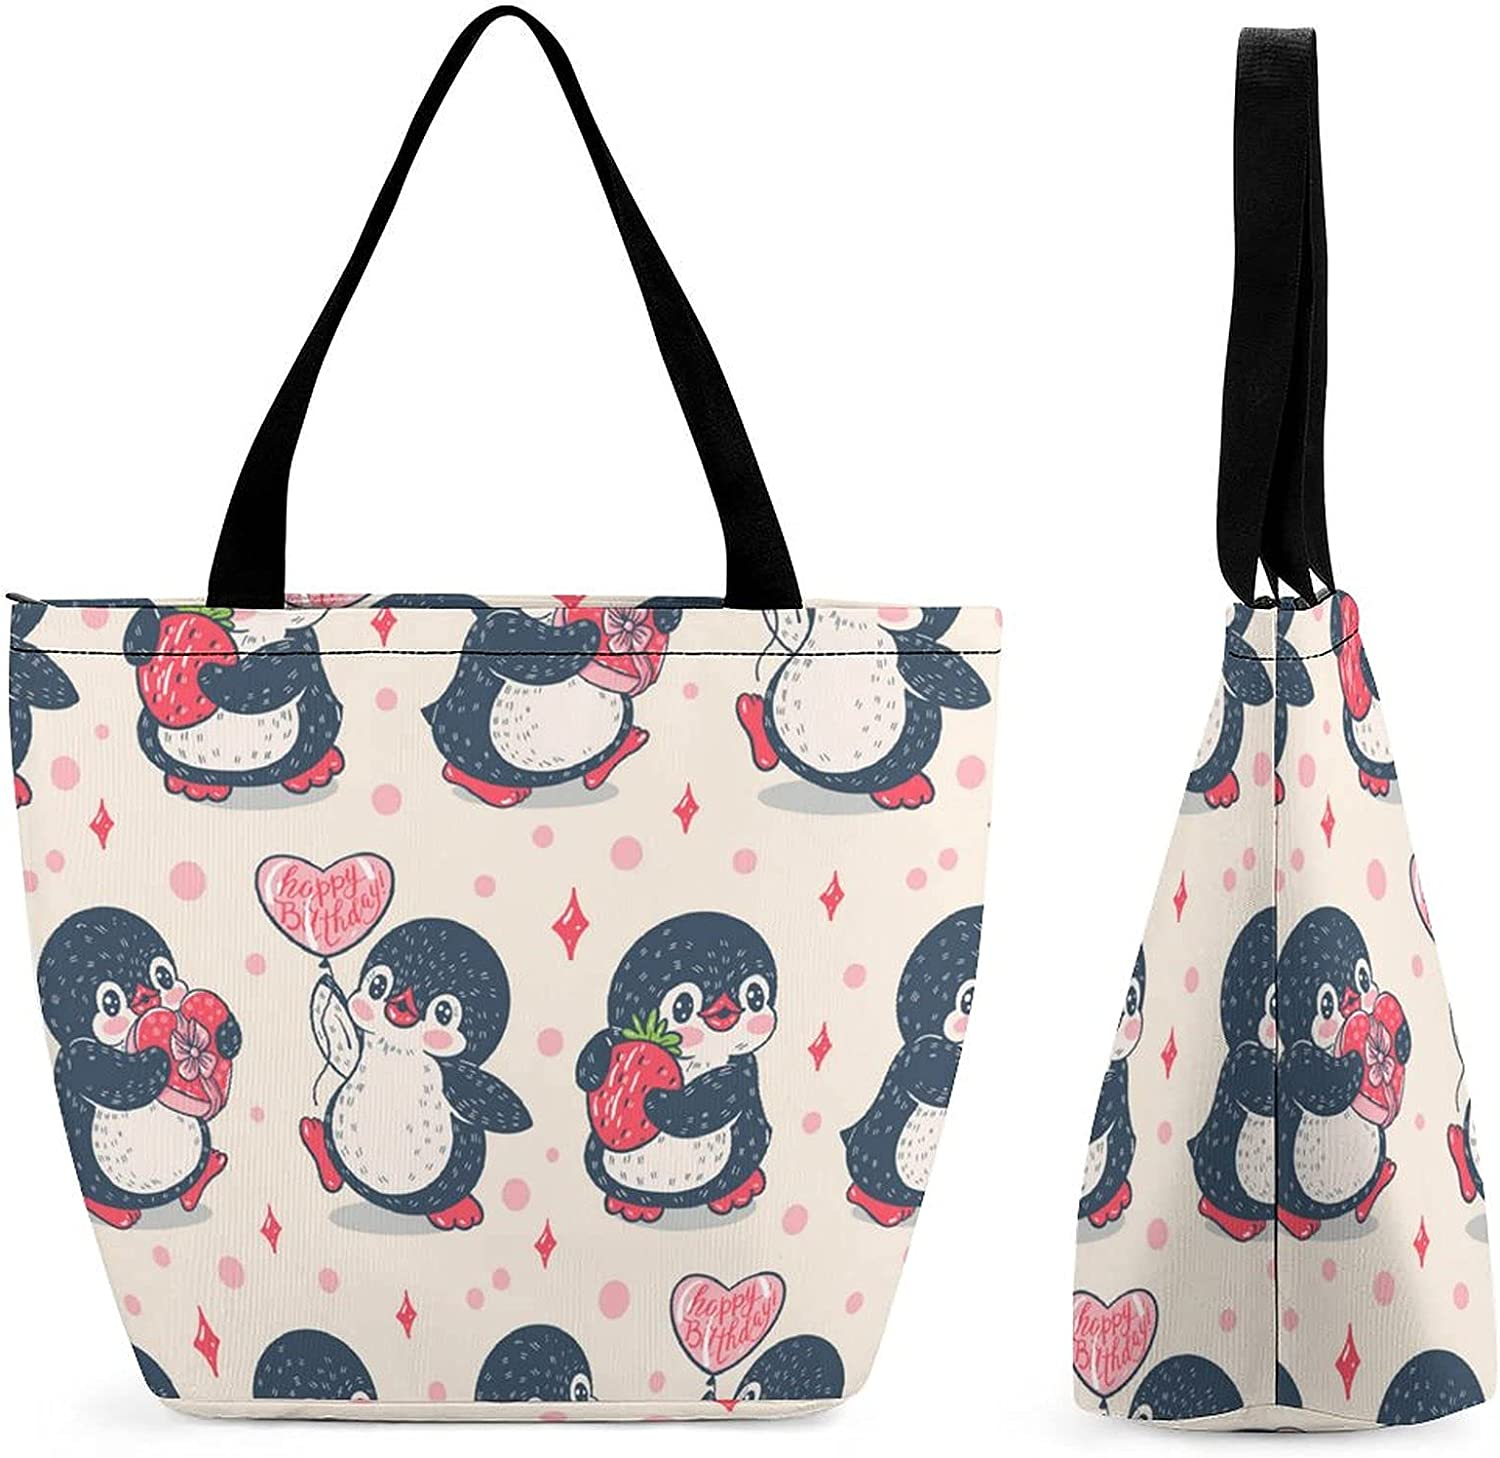 Seamless Max 64% OFF Pattern with Cute Penguins Large Capacity Womens' Popular products Reusa